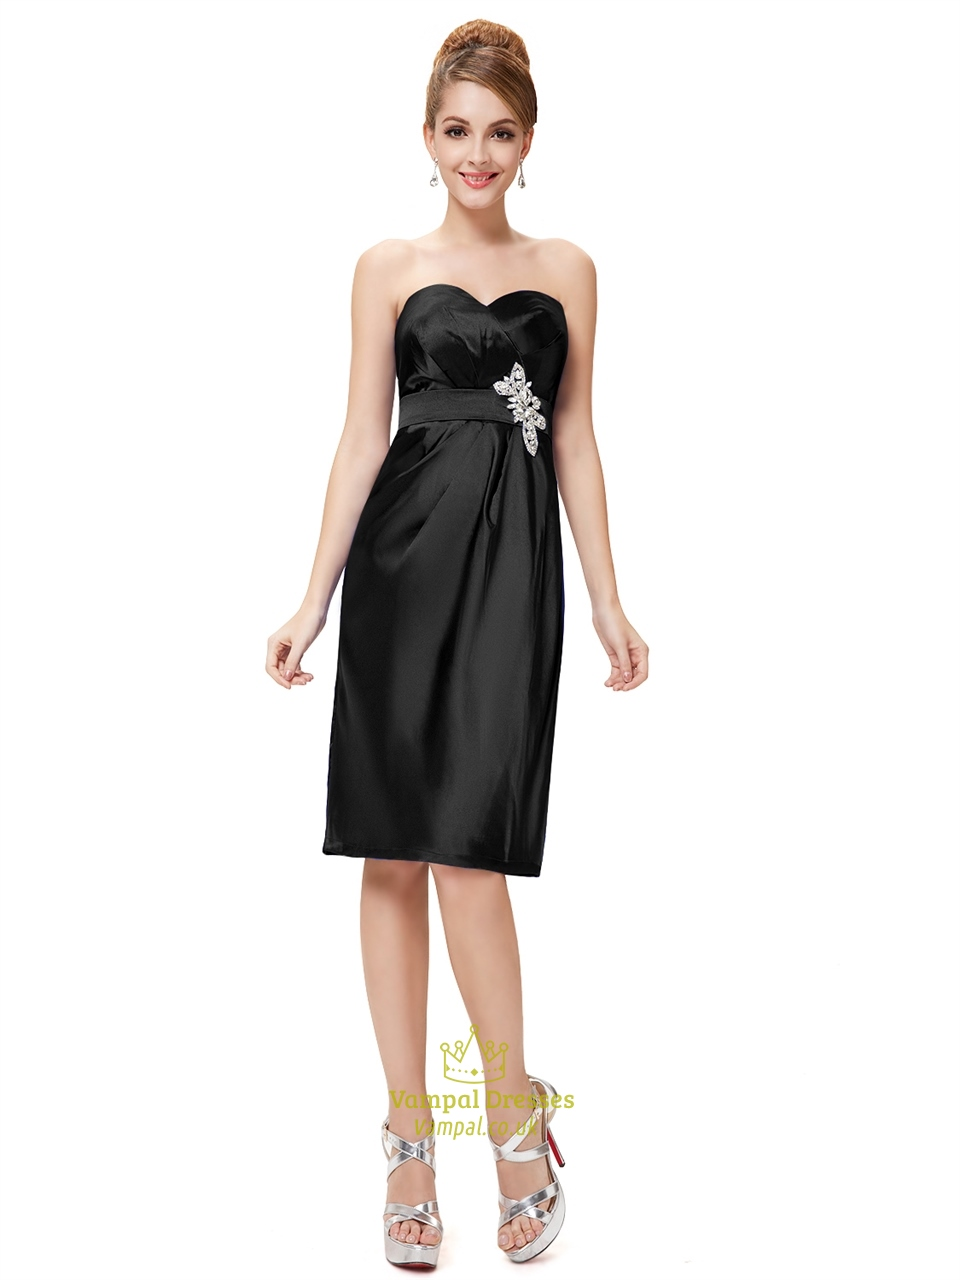 Black Sweetheart Neckline Knee Length Cocktail Dress With